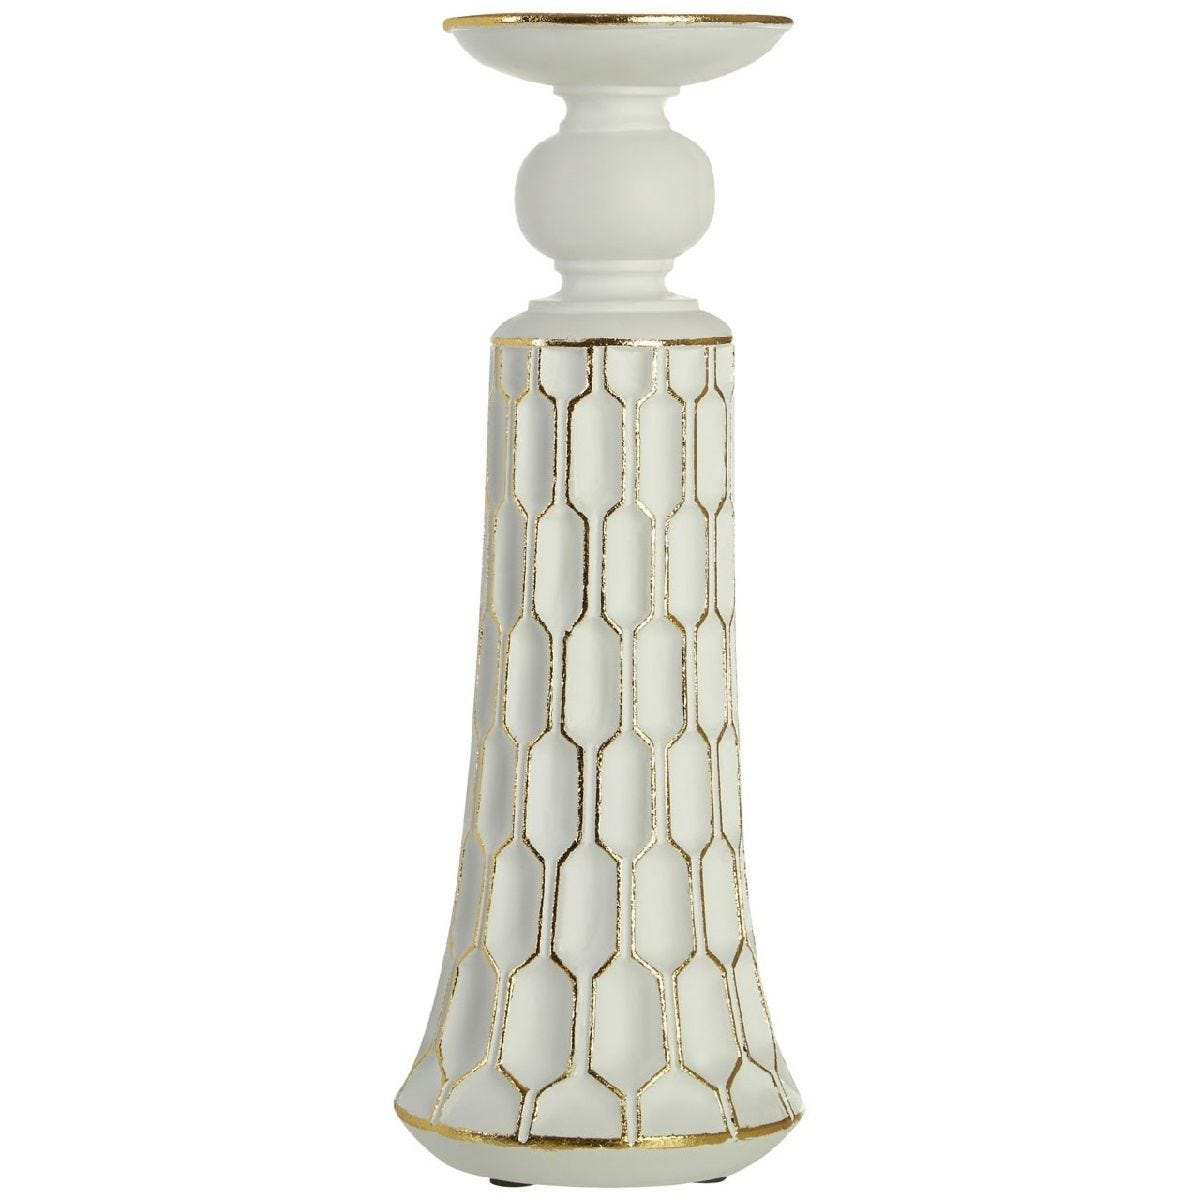 Premier Housewares Honeycomb Large Candle Holder - White/Gold Polyresin